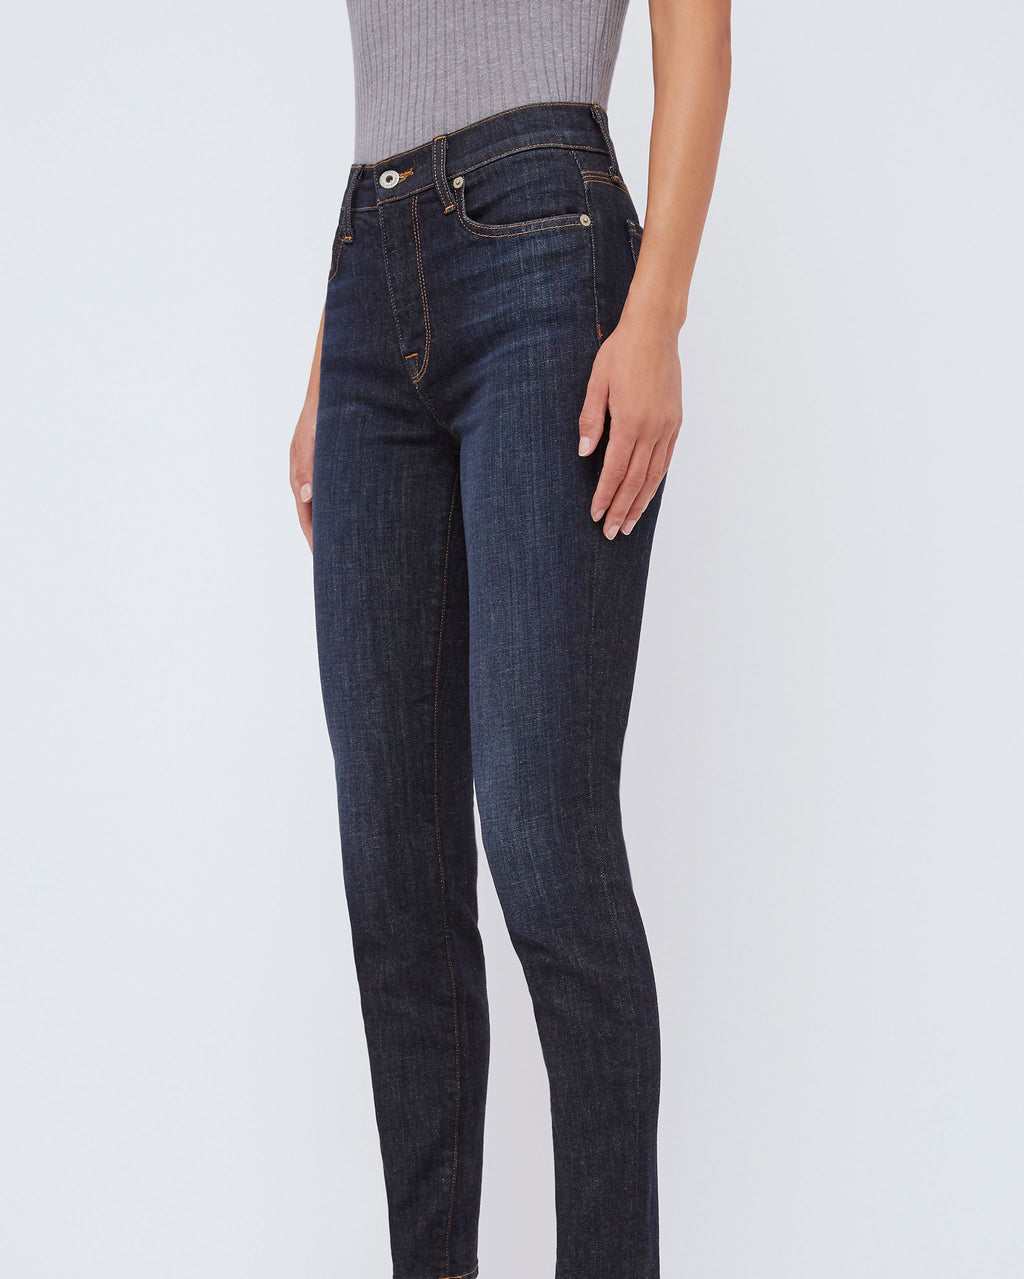 The Karlie Jean In Mystique